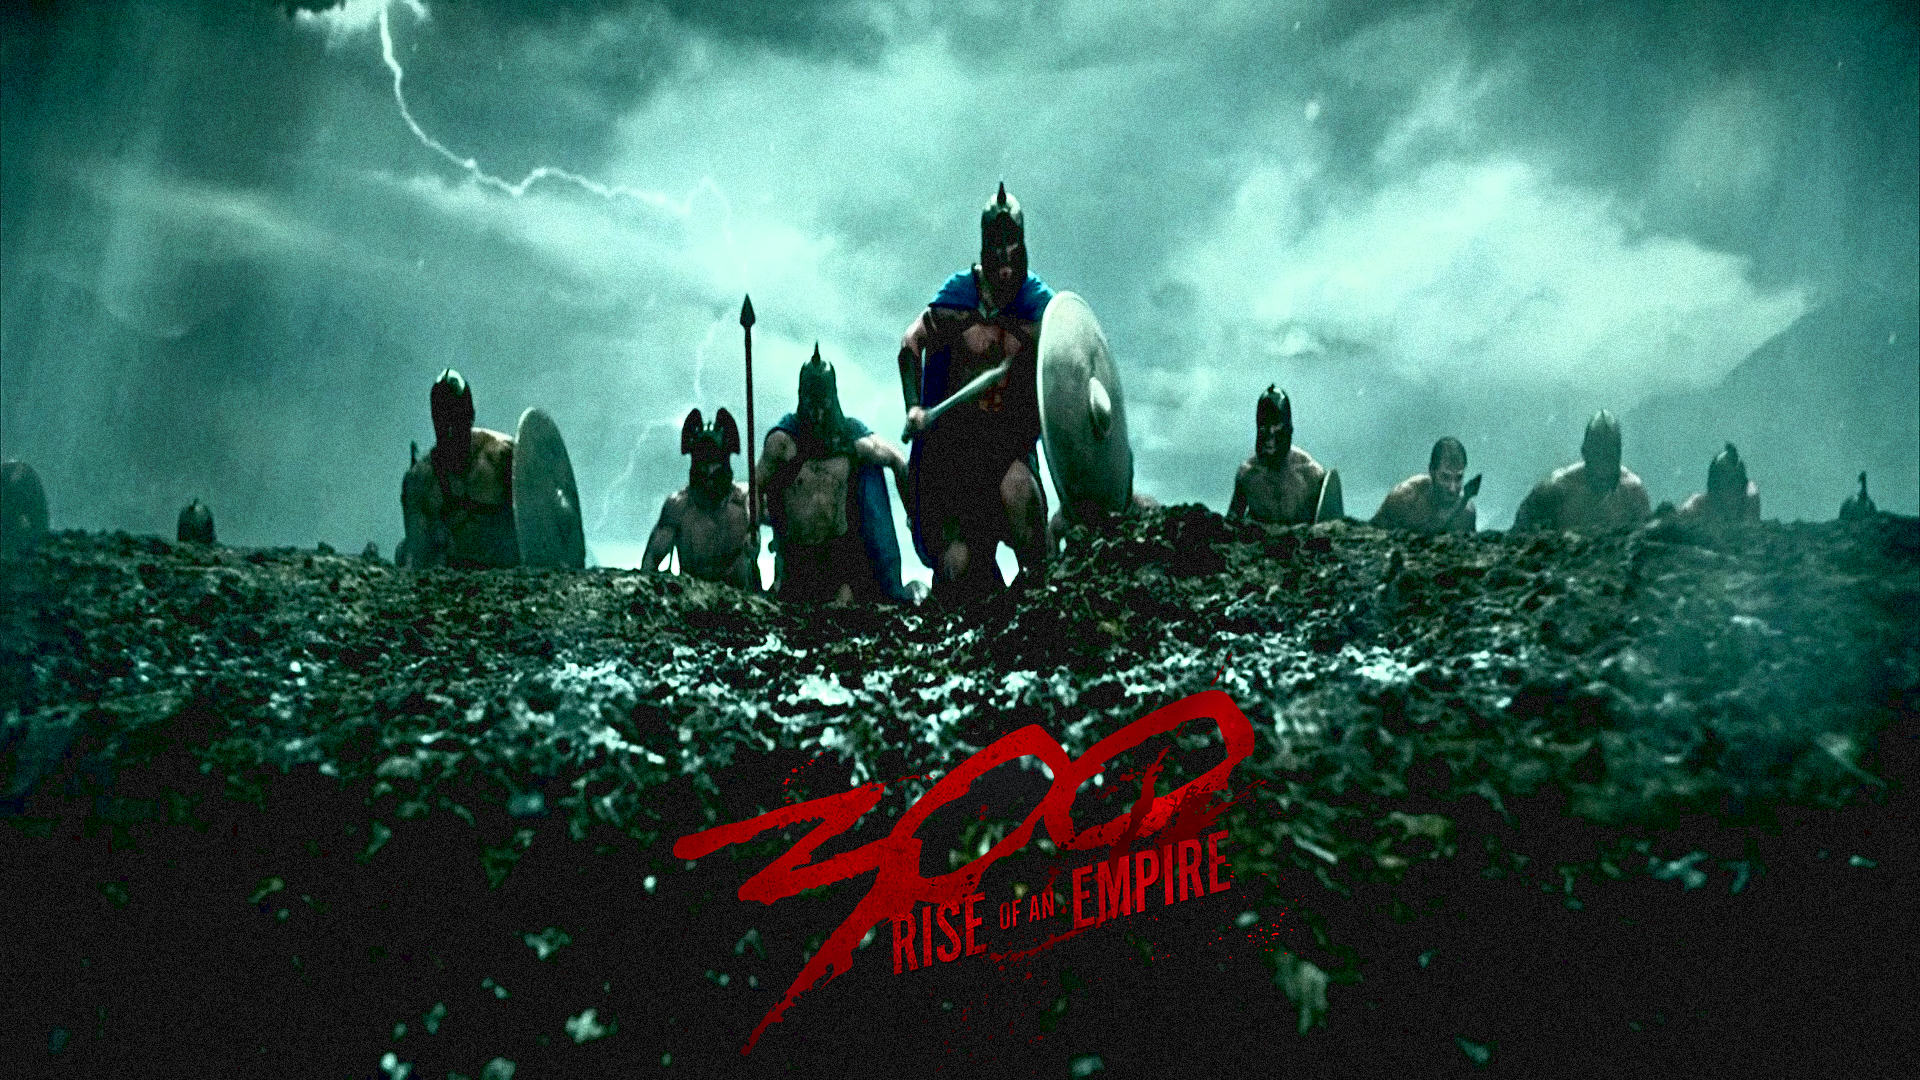 300 rise of an empire 1080p download